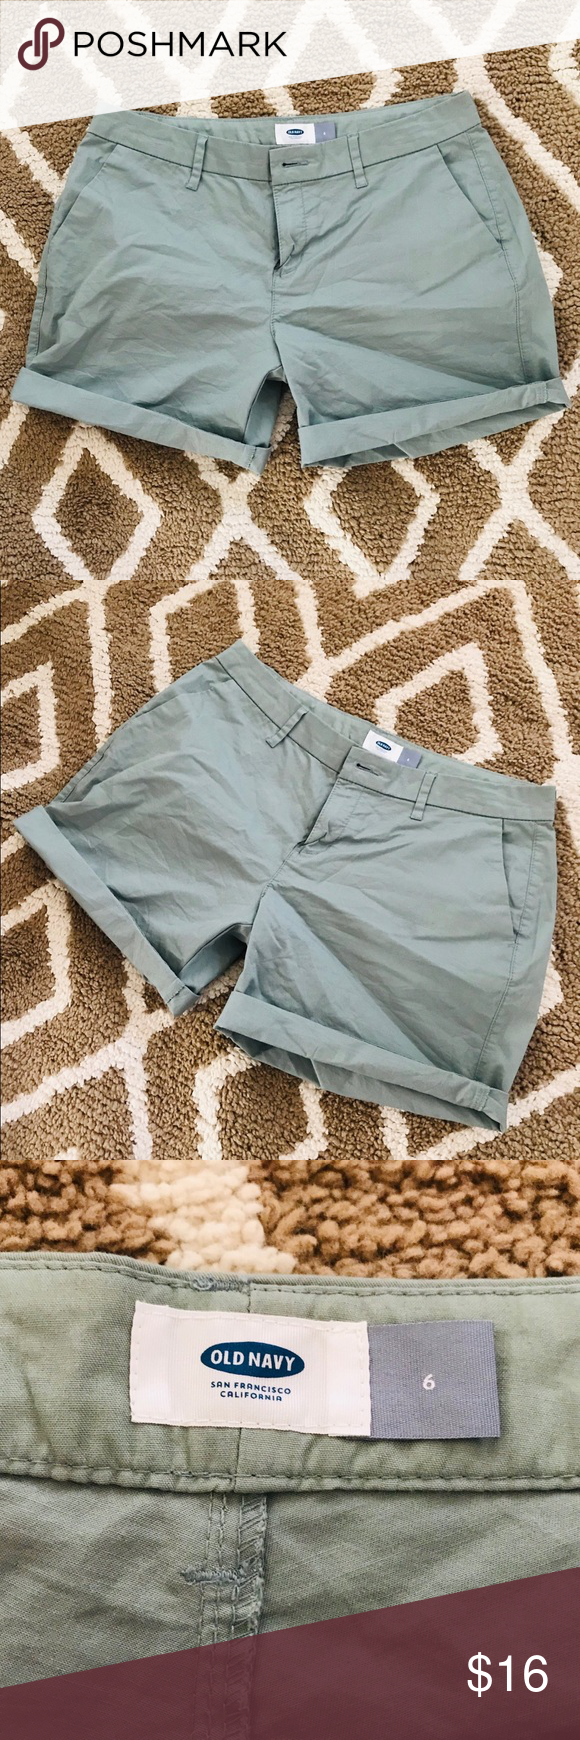 OLD NAVY khaki green chino shorts 6 preppy Cute Old Navy shorts Only worn  once Stylish 0eb969bd54af